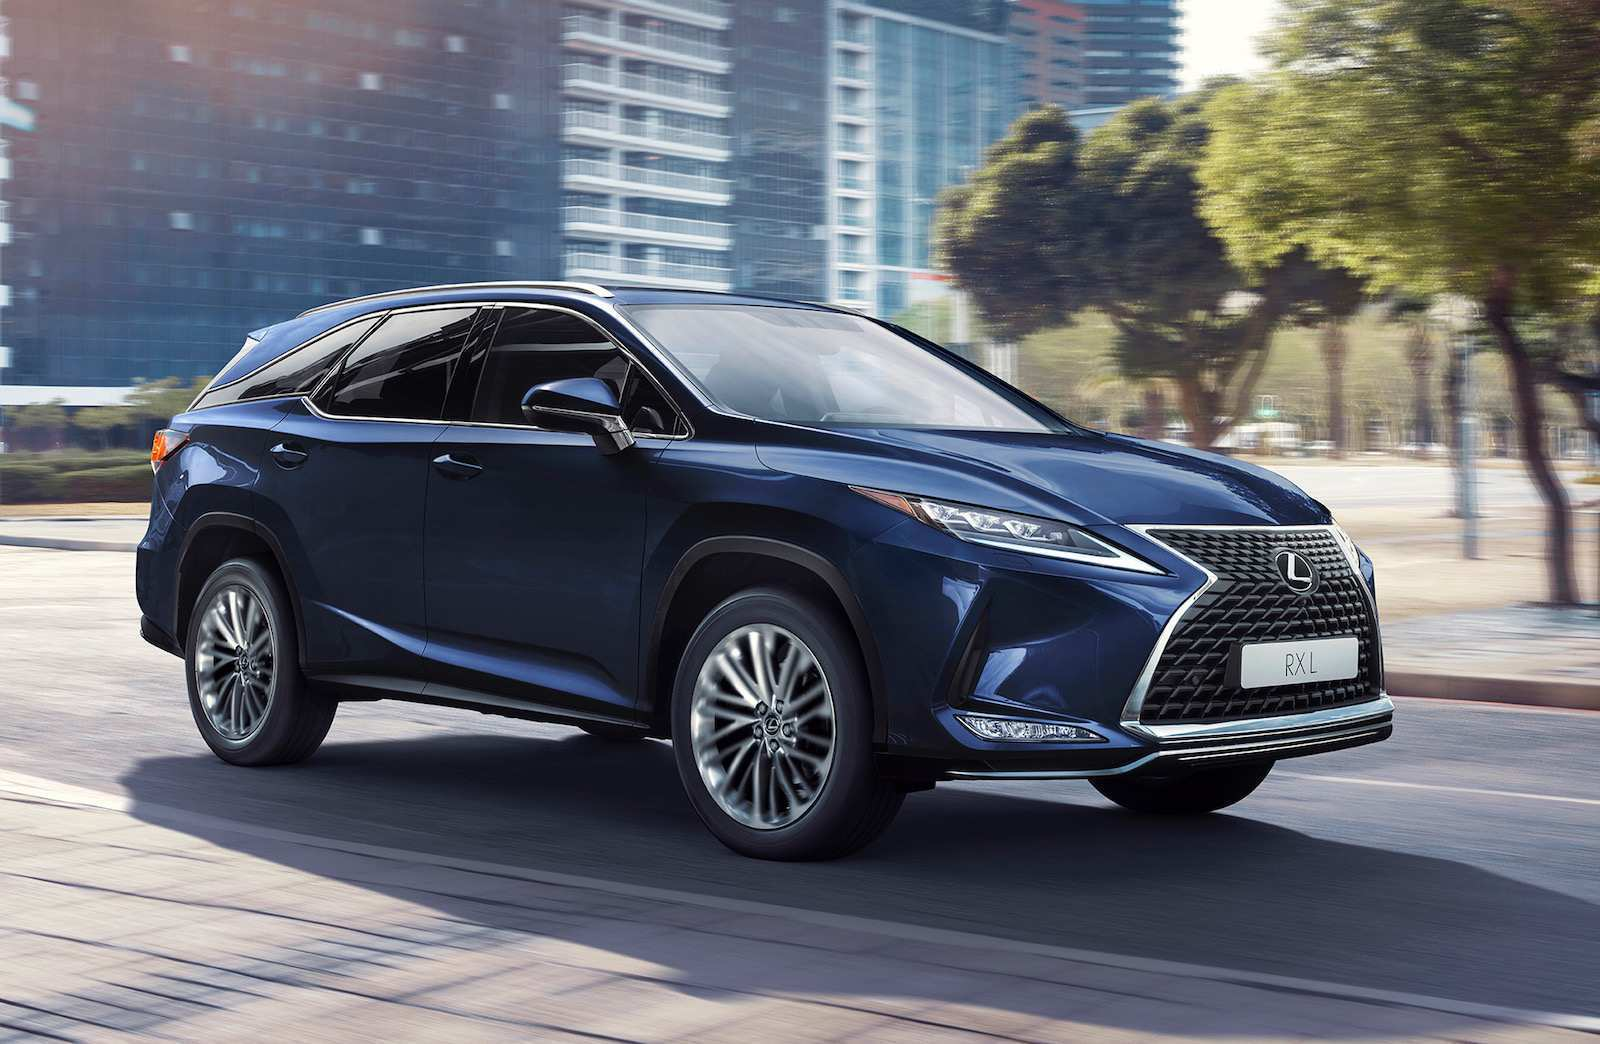 91 The Best Lexus Rx 450H Facelift 2020 Review